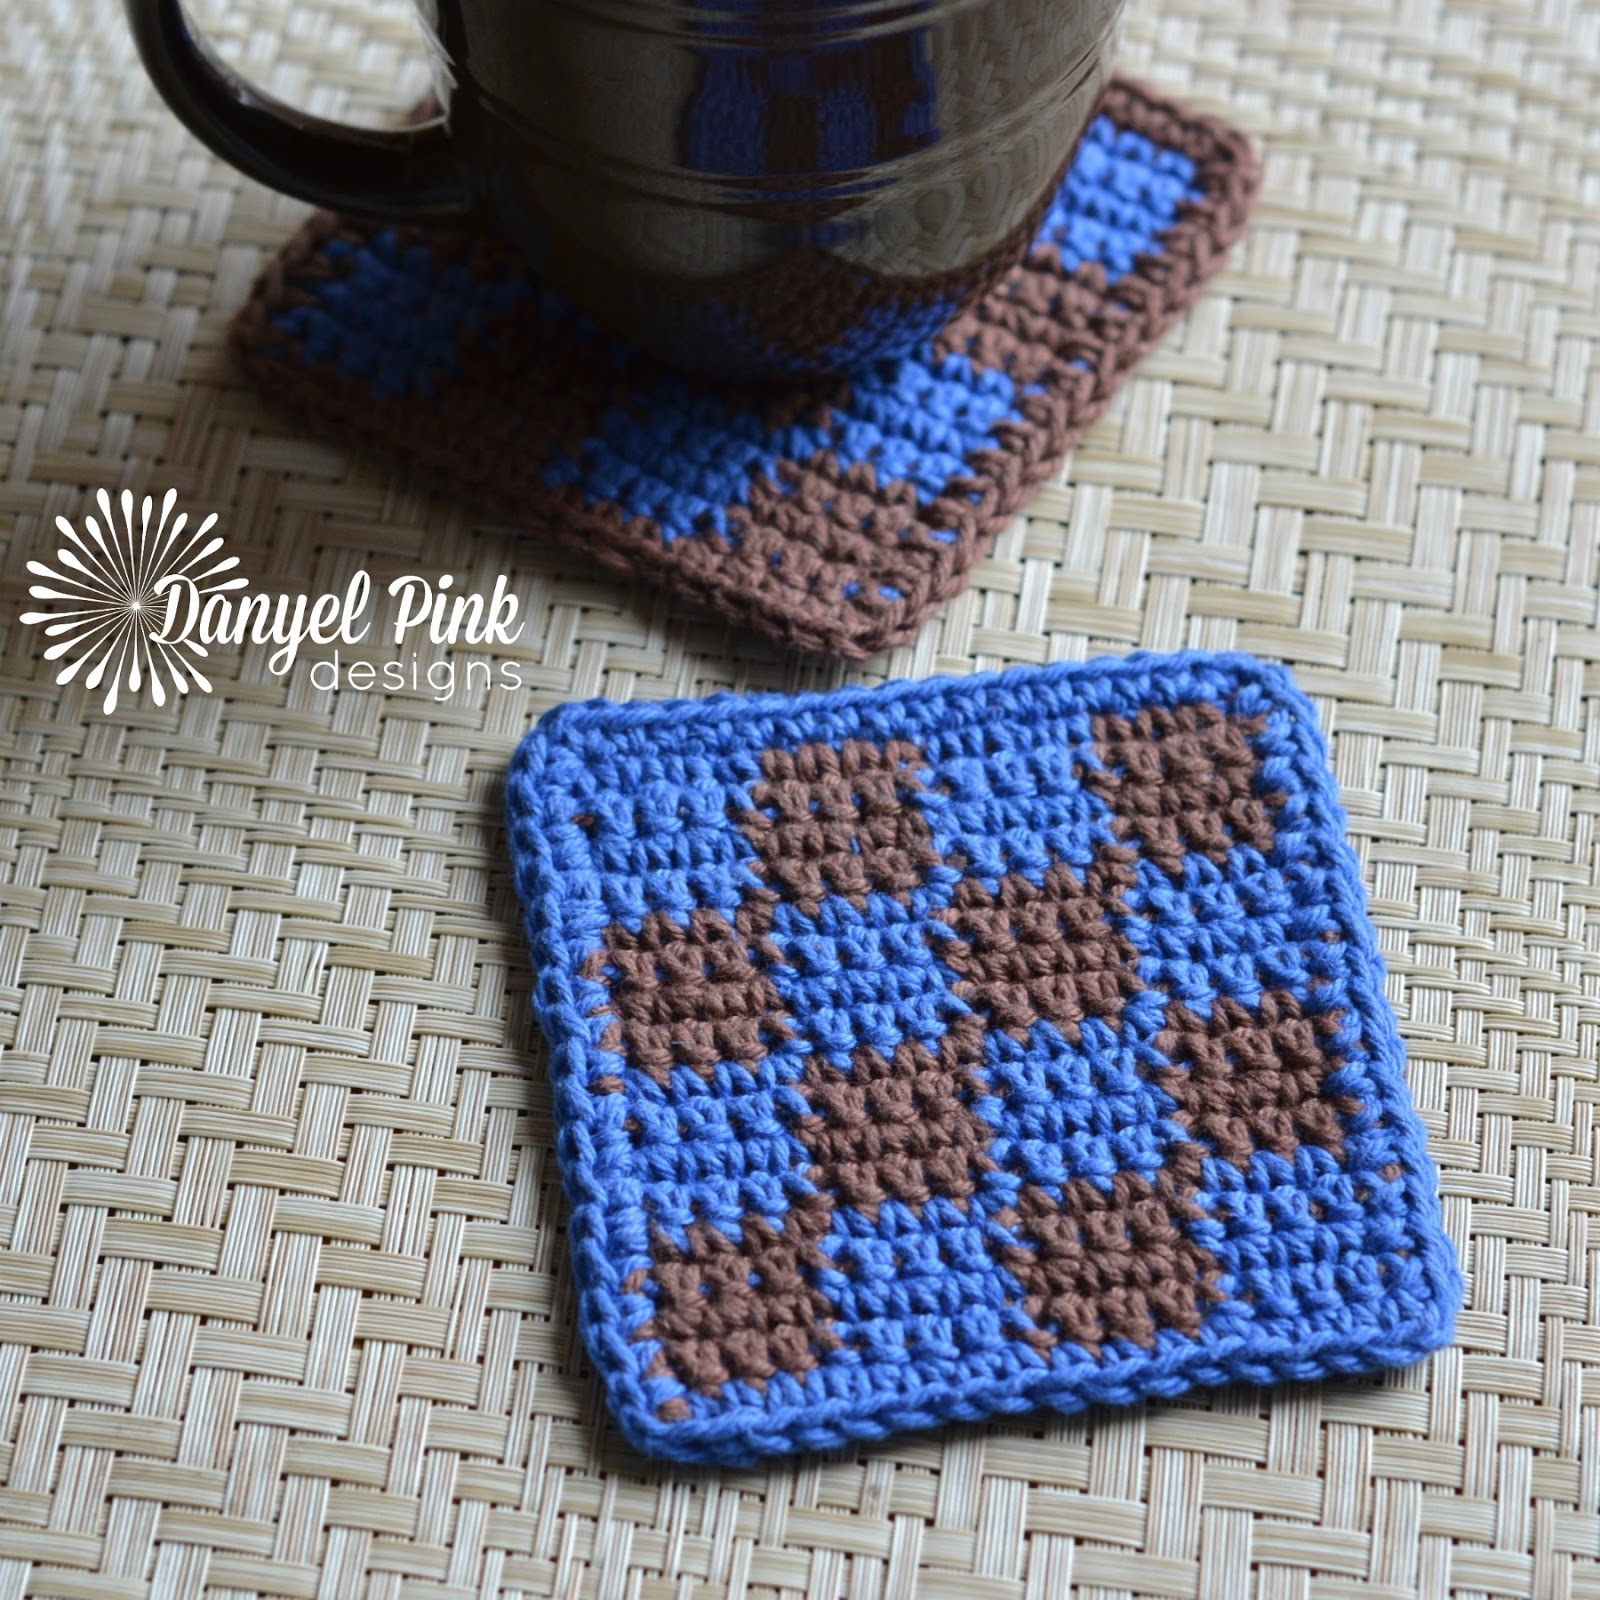 Danyel Pink Designs: CROCHET PATTERN - Square Tile Coasters